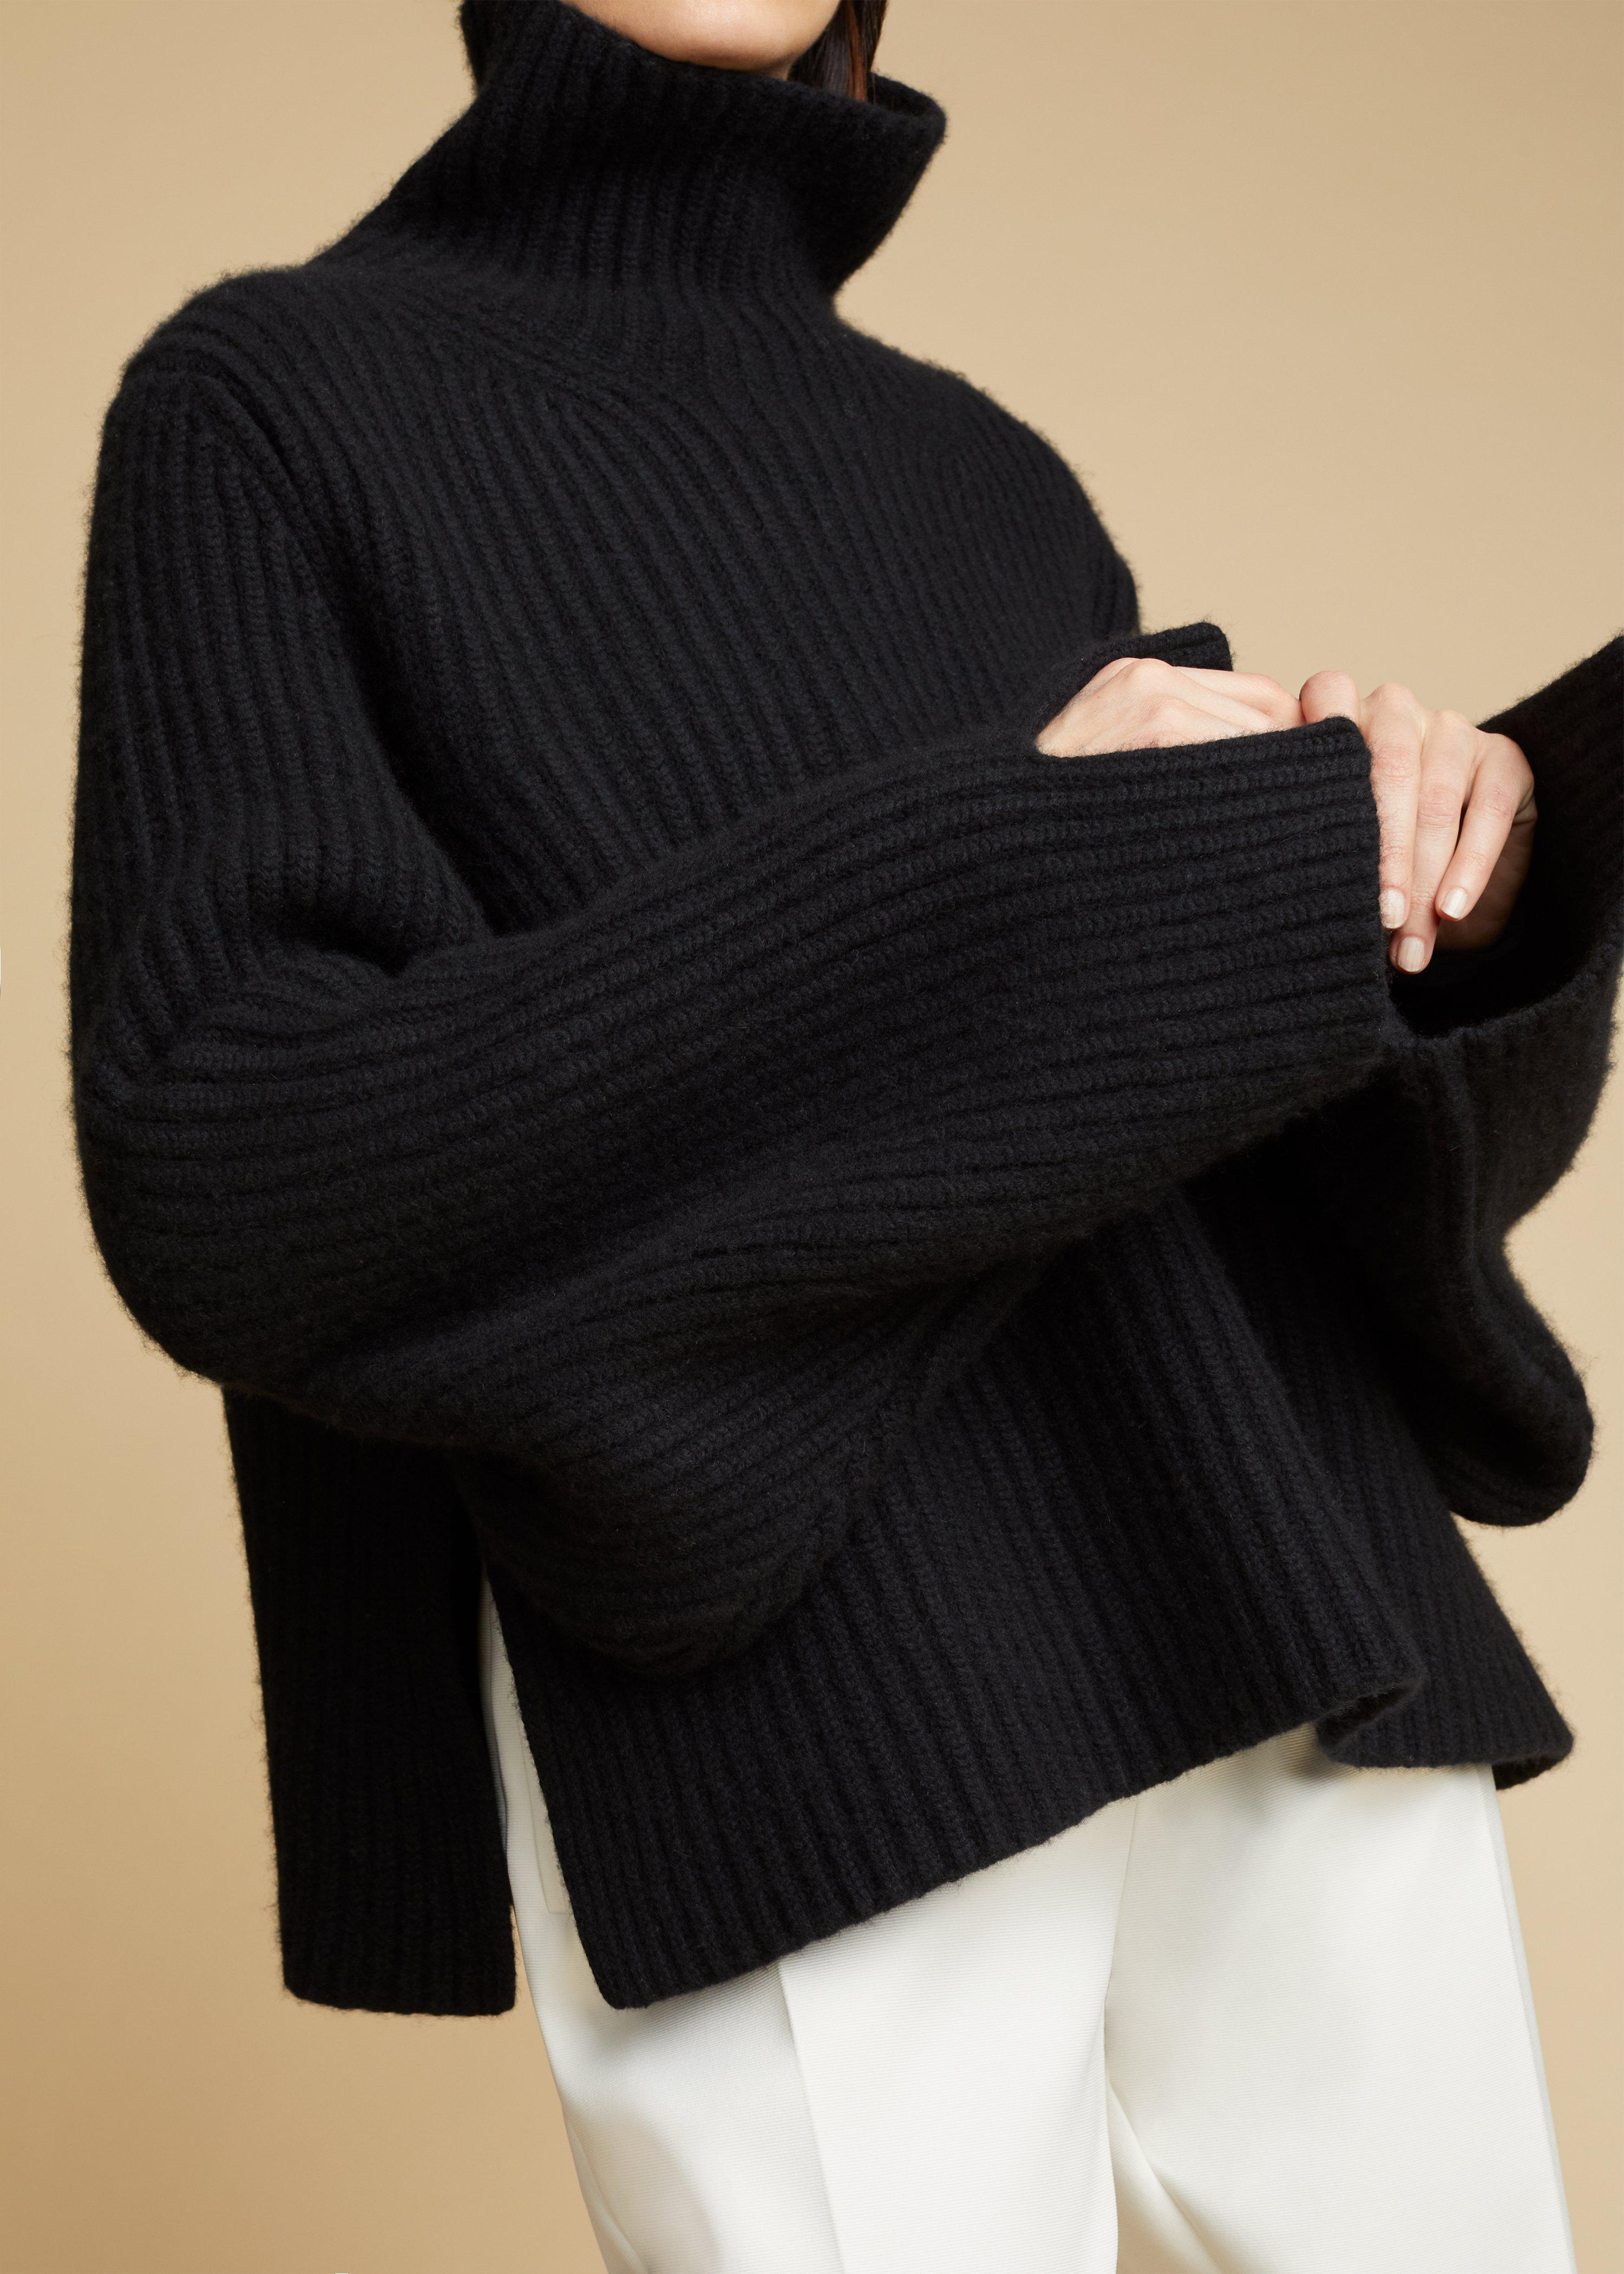 The Molly Sweater in Black 5